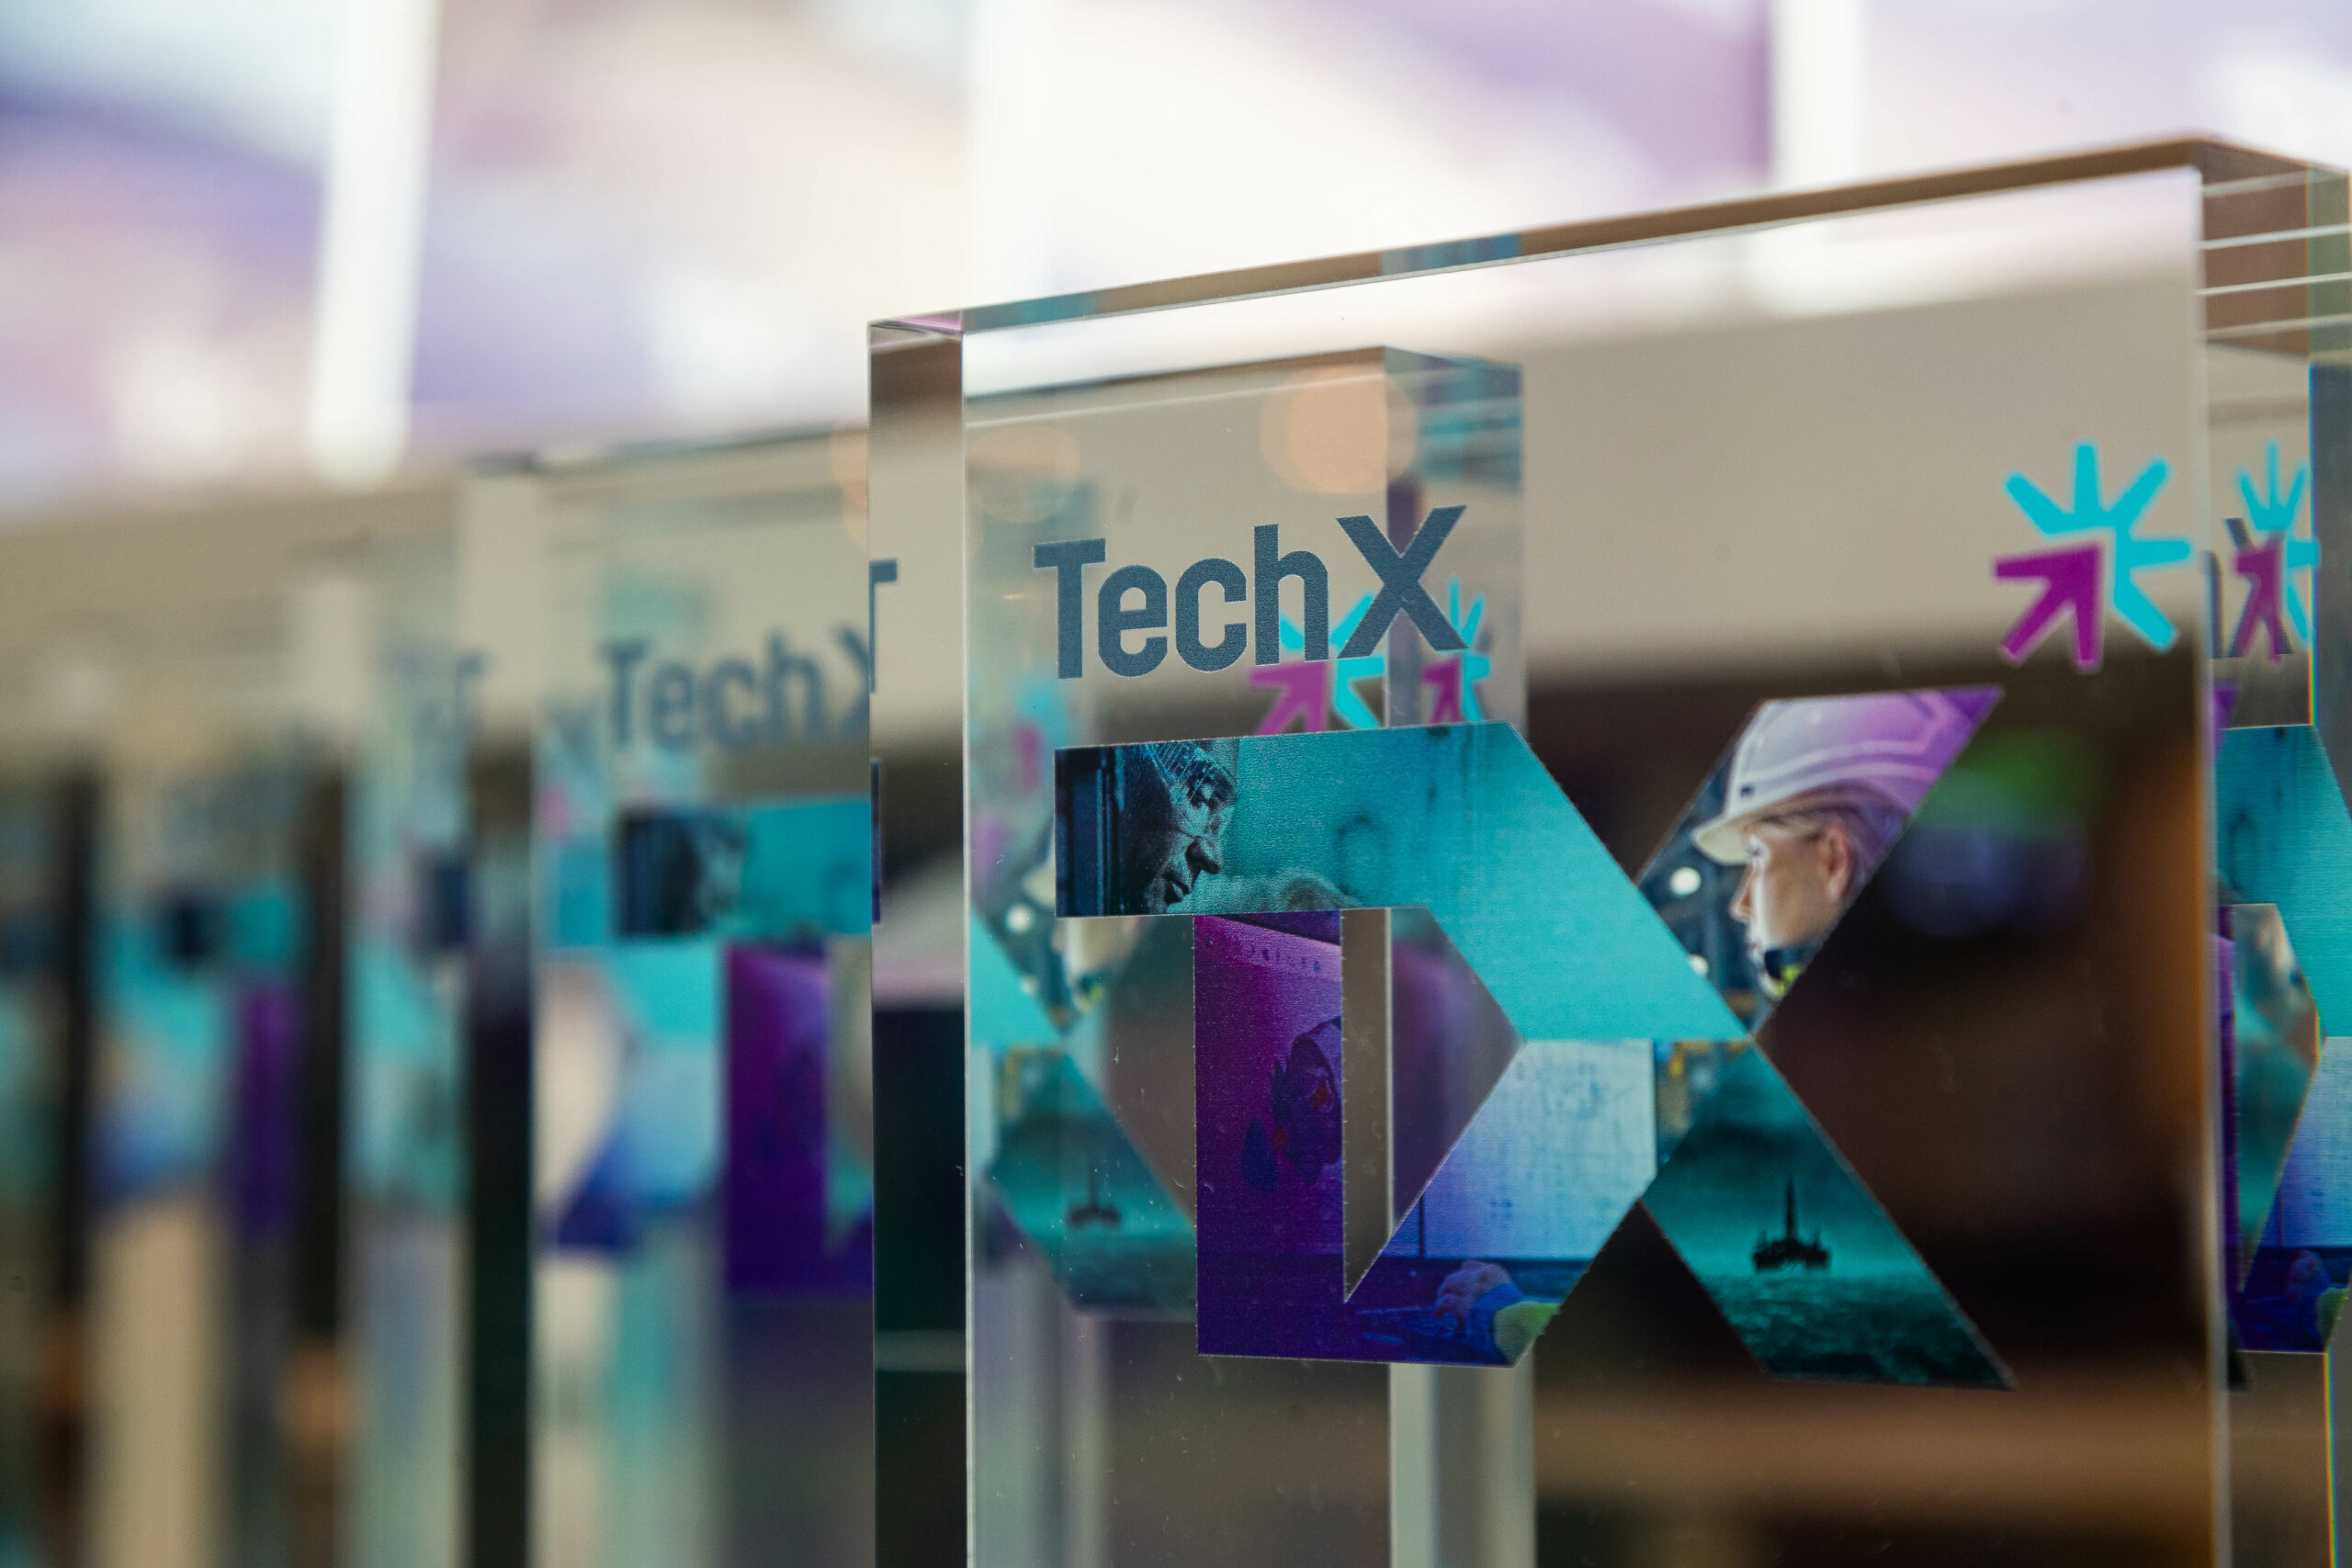 MEMBER NEWS: NZTC launches applications for TechX Clean Energy Start-up Accelerator